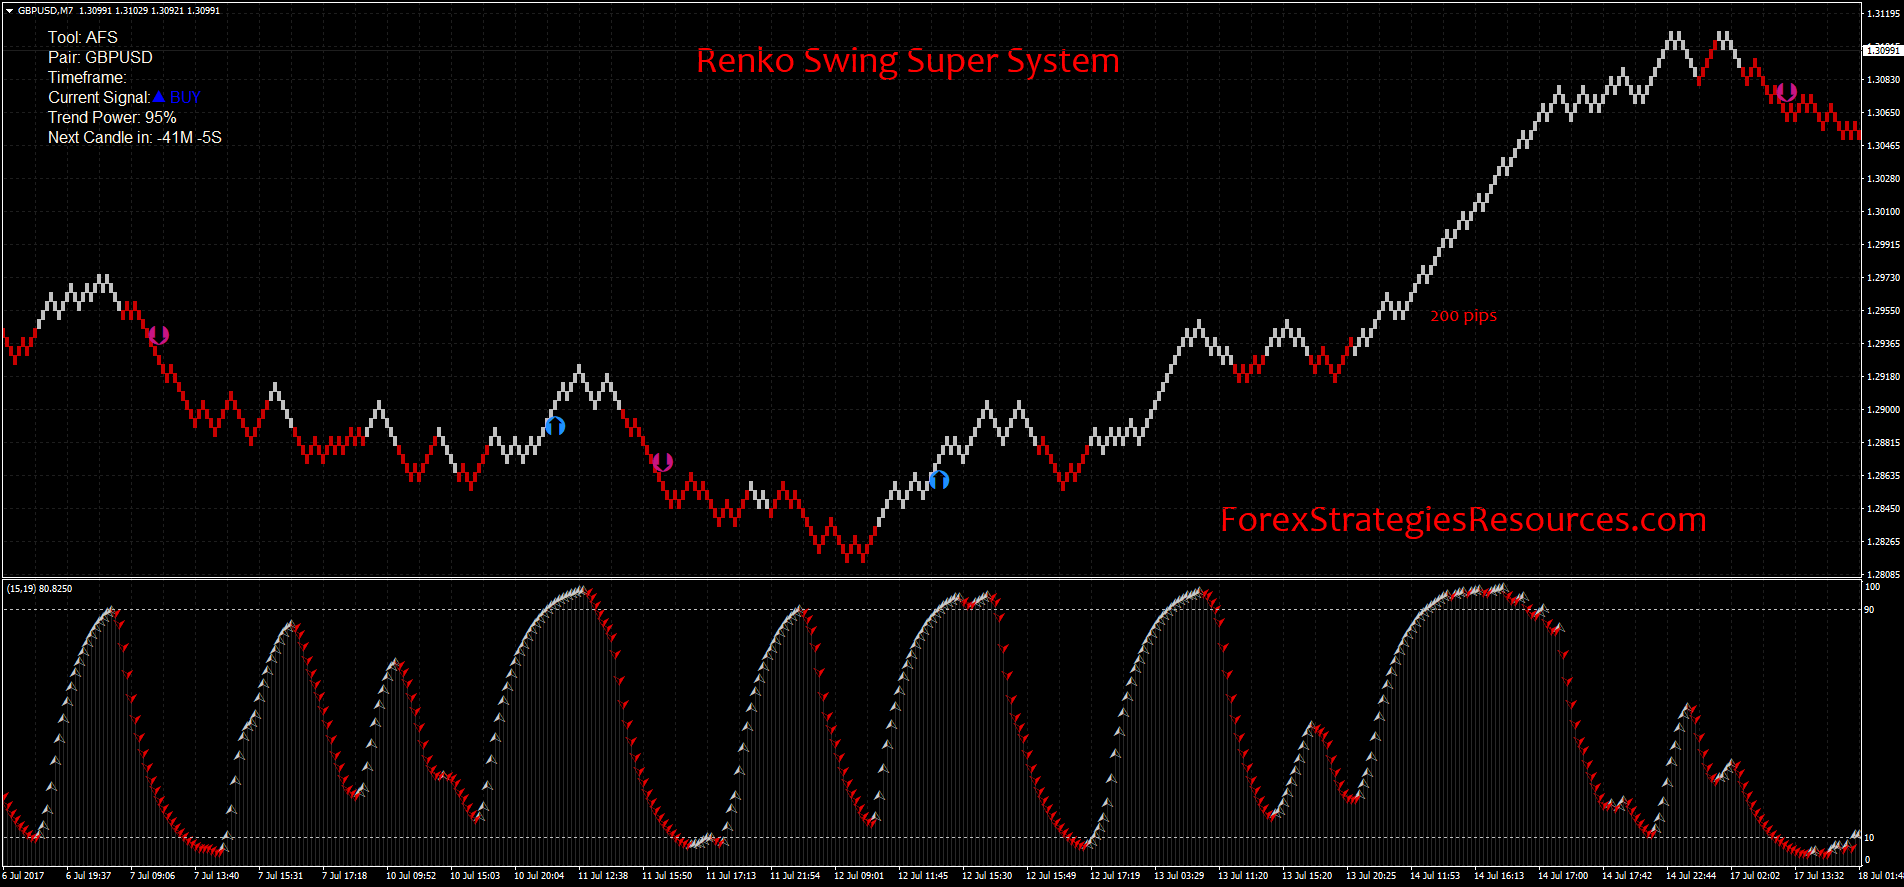 Renko Swing Super System - Forex Strategies - Forex